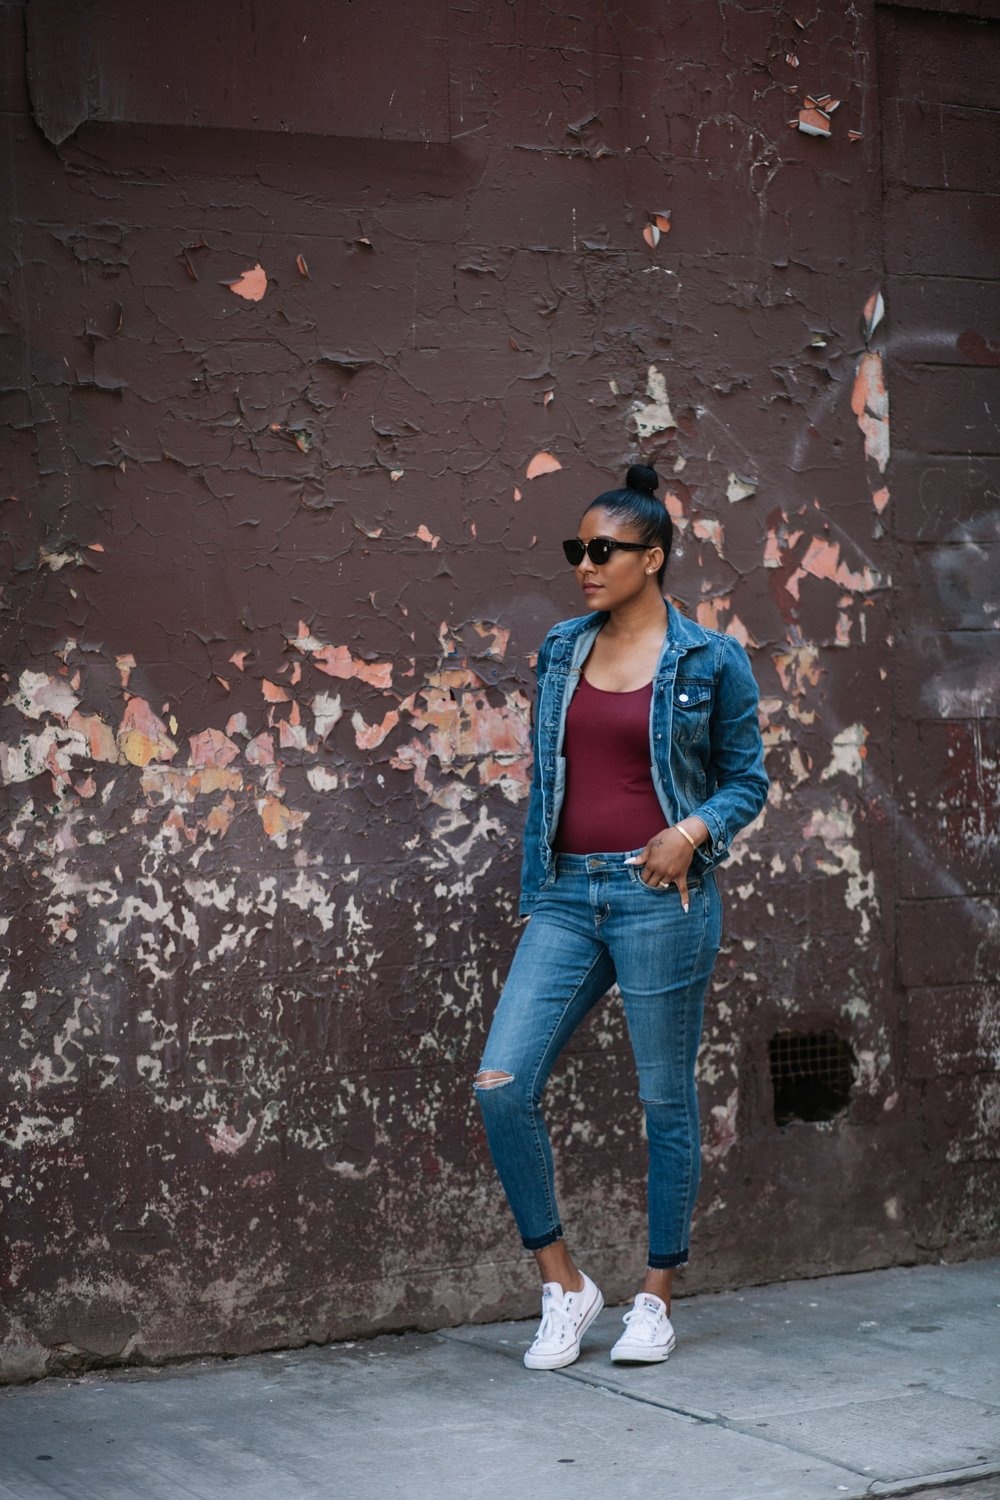 Denim jacket : The Gap | Basic bodytop: The Gap | Fryed Jeans : The Gap | Sunglasses: Celine | Sneakers : Converse